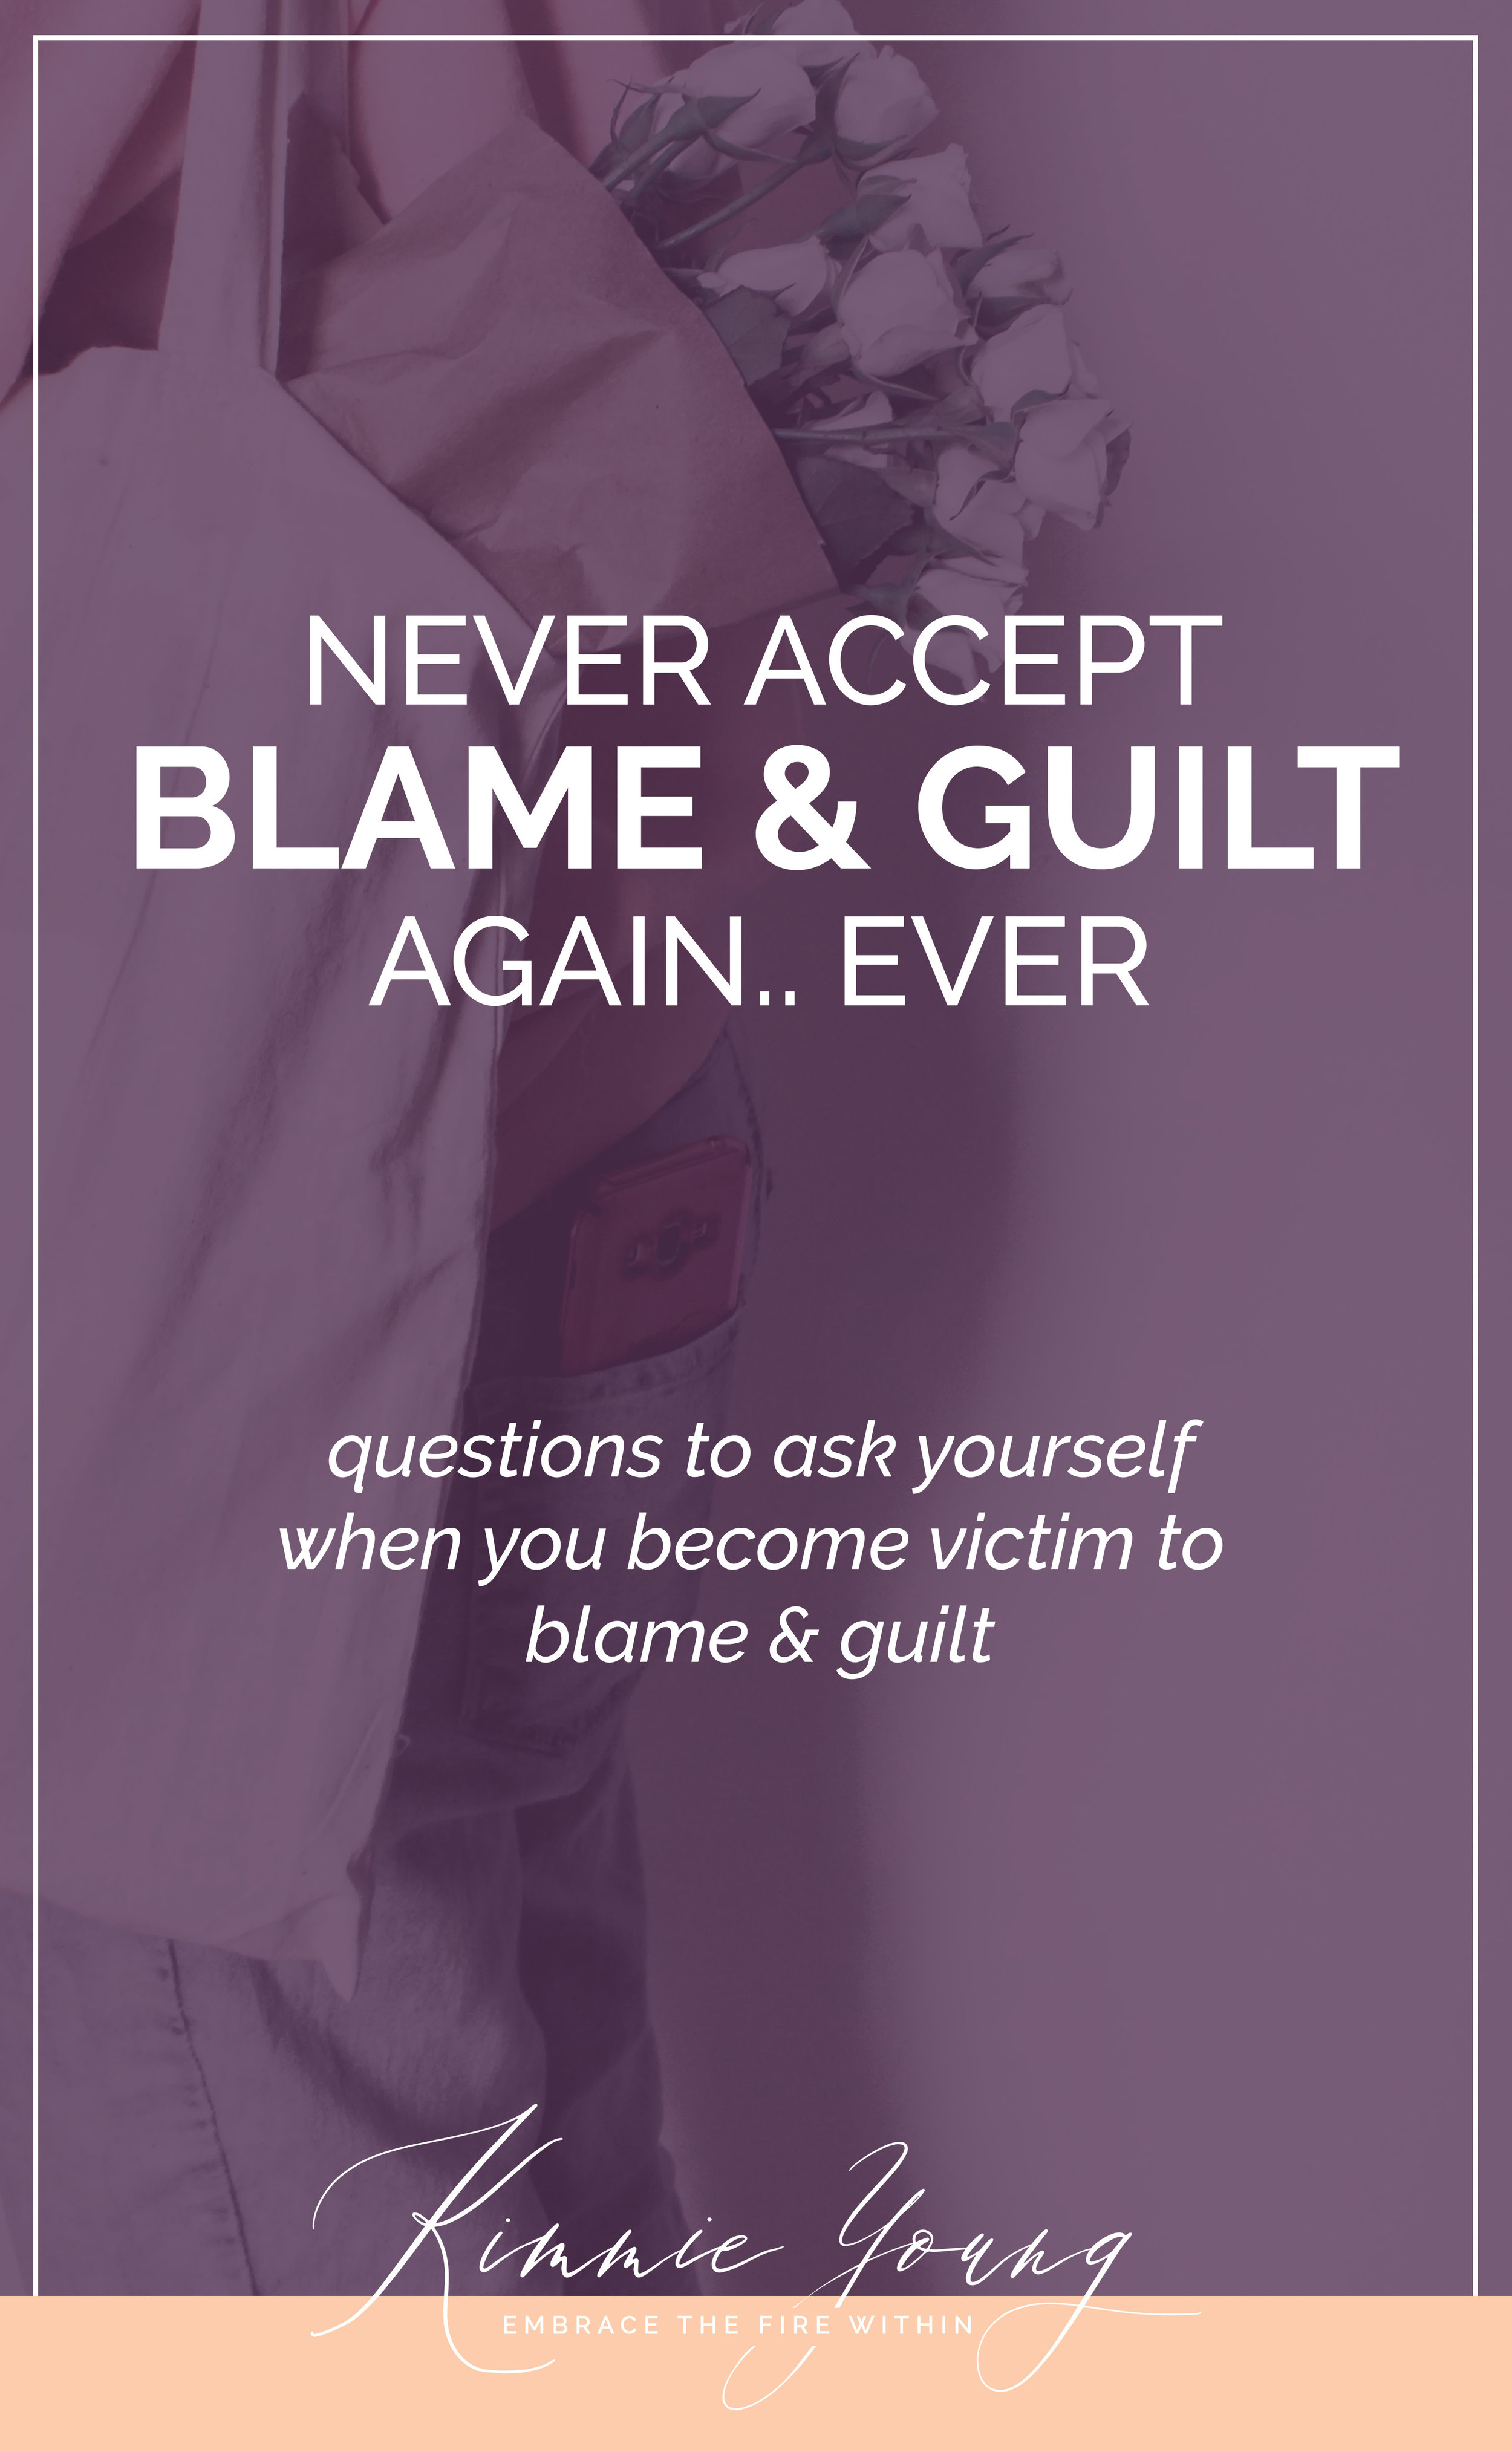 RECLAIMING YOUR FREEDOM - In relating with a blamer, some important questions to contemplate are: